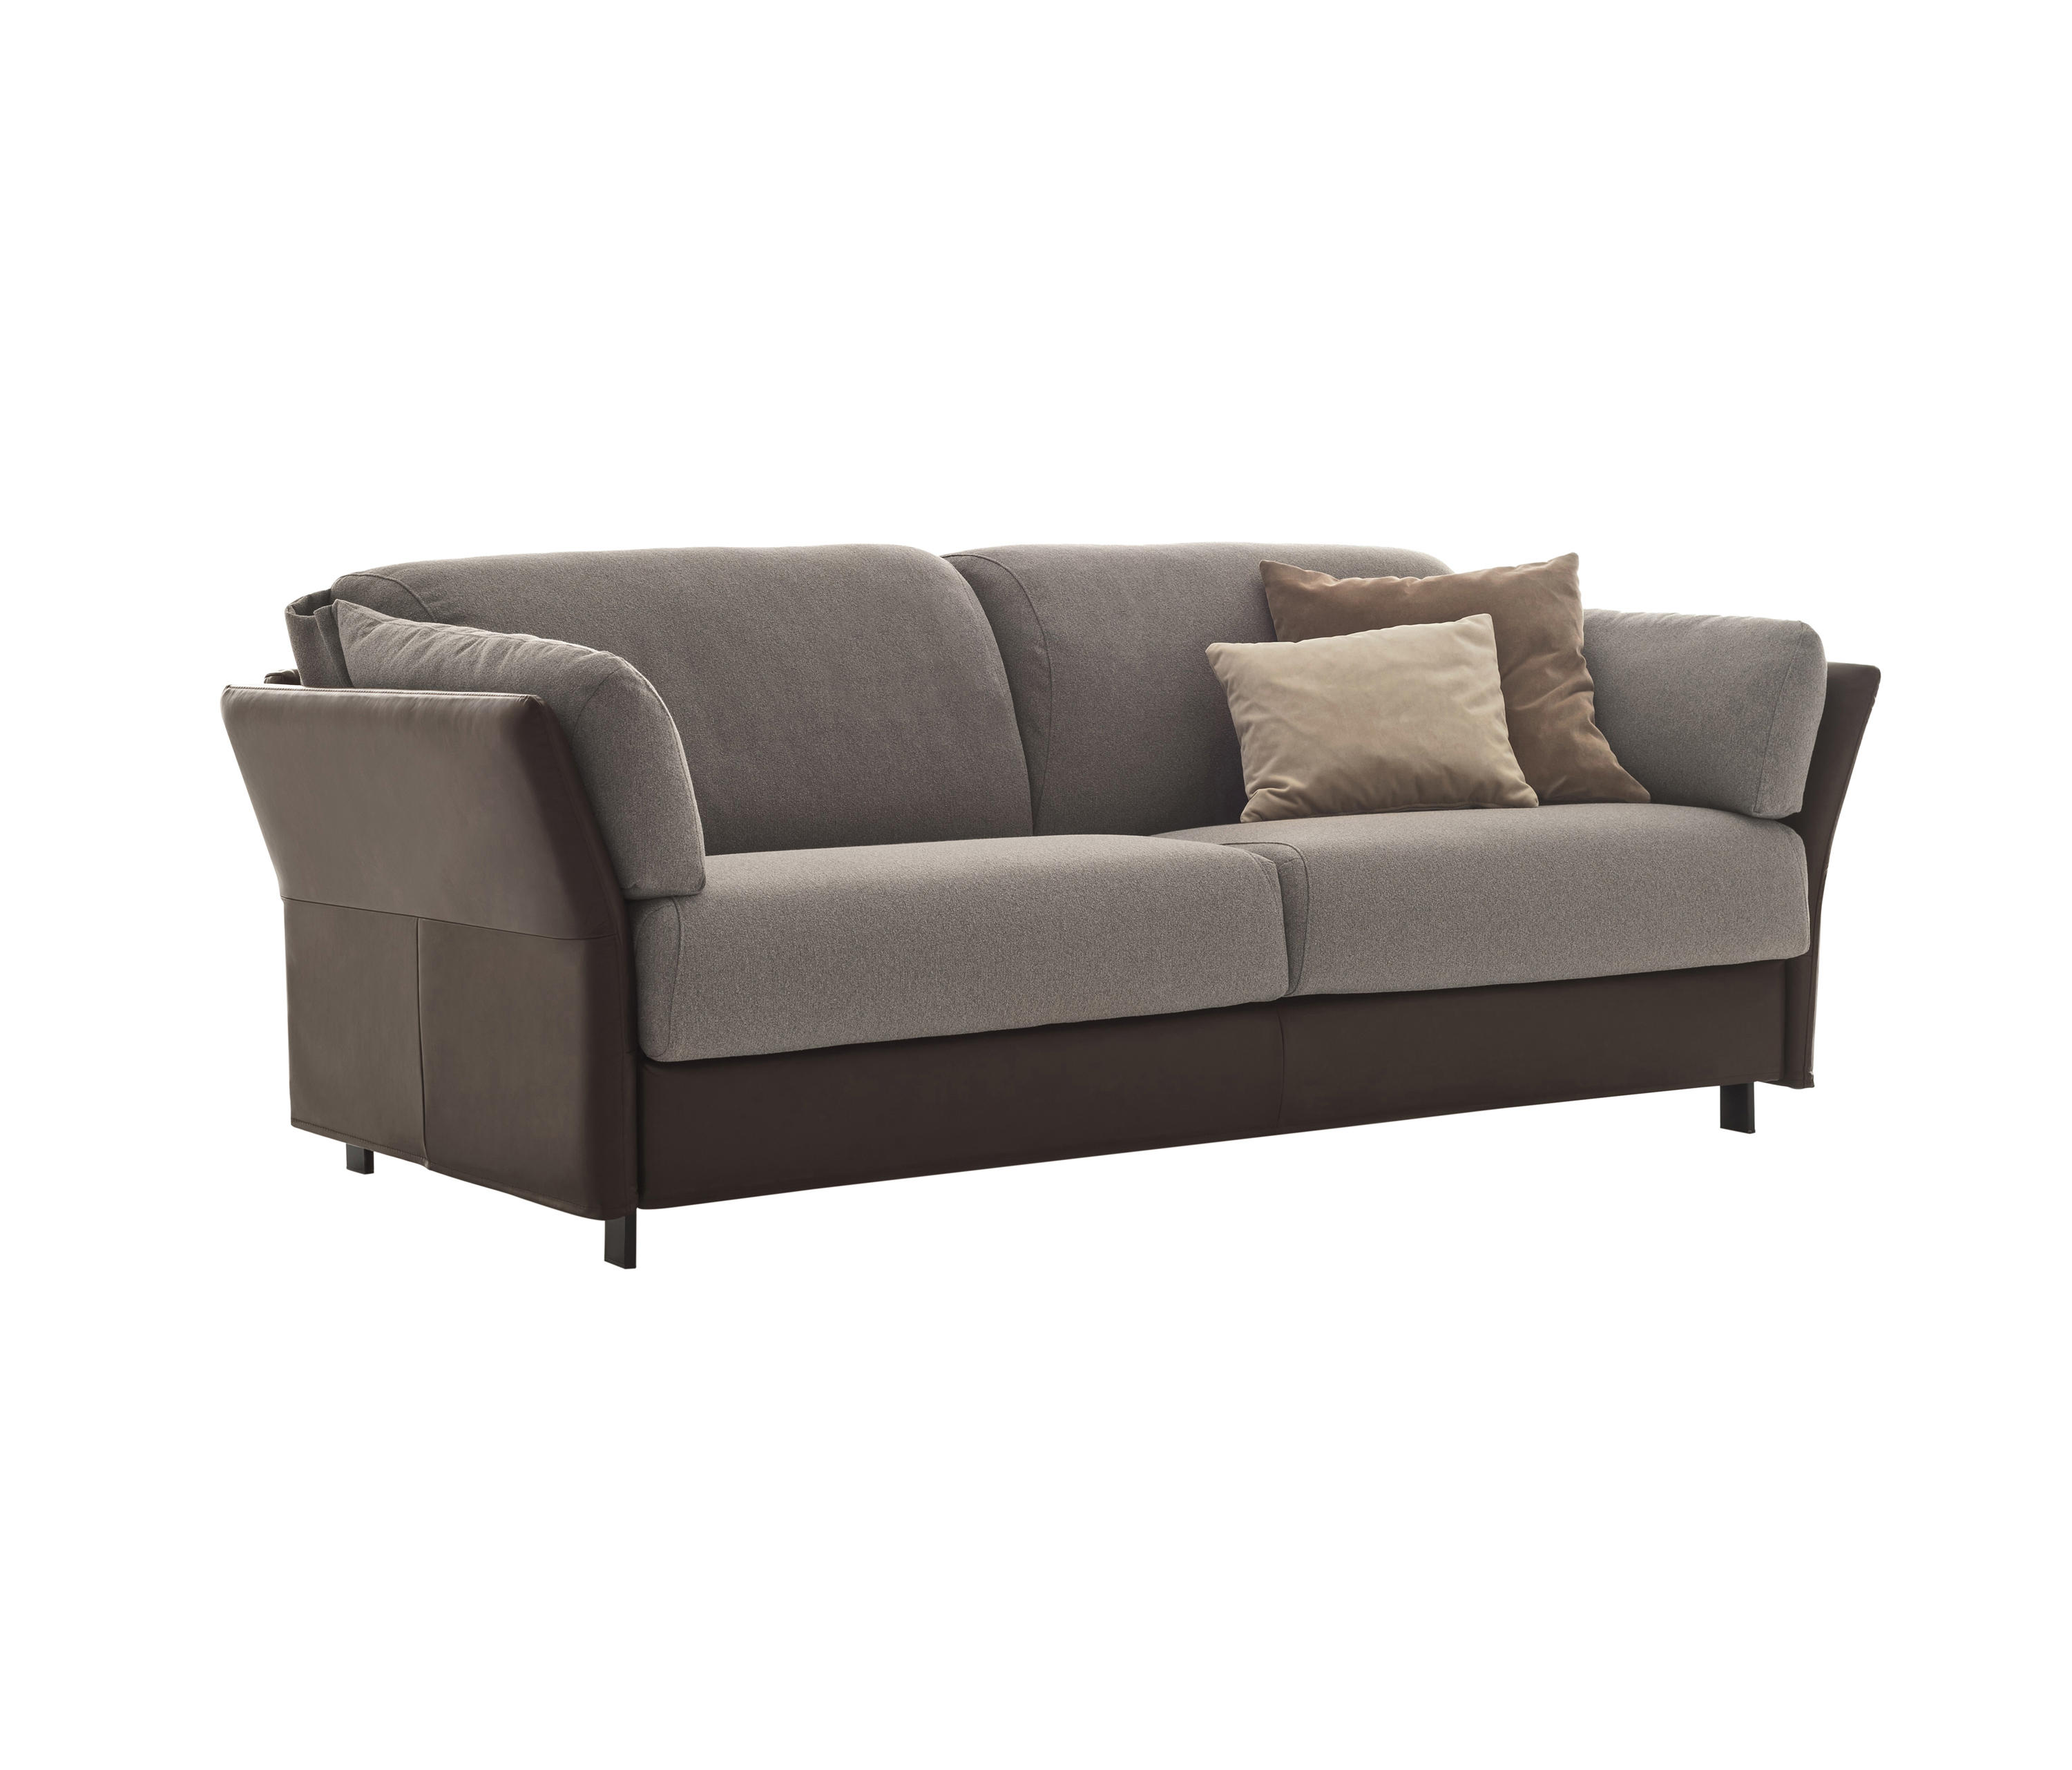 B And Italia Sofa Bed Review